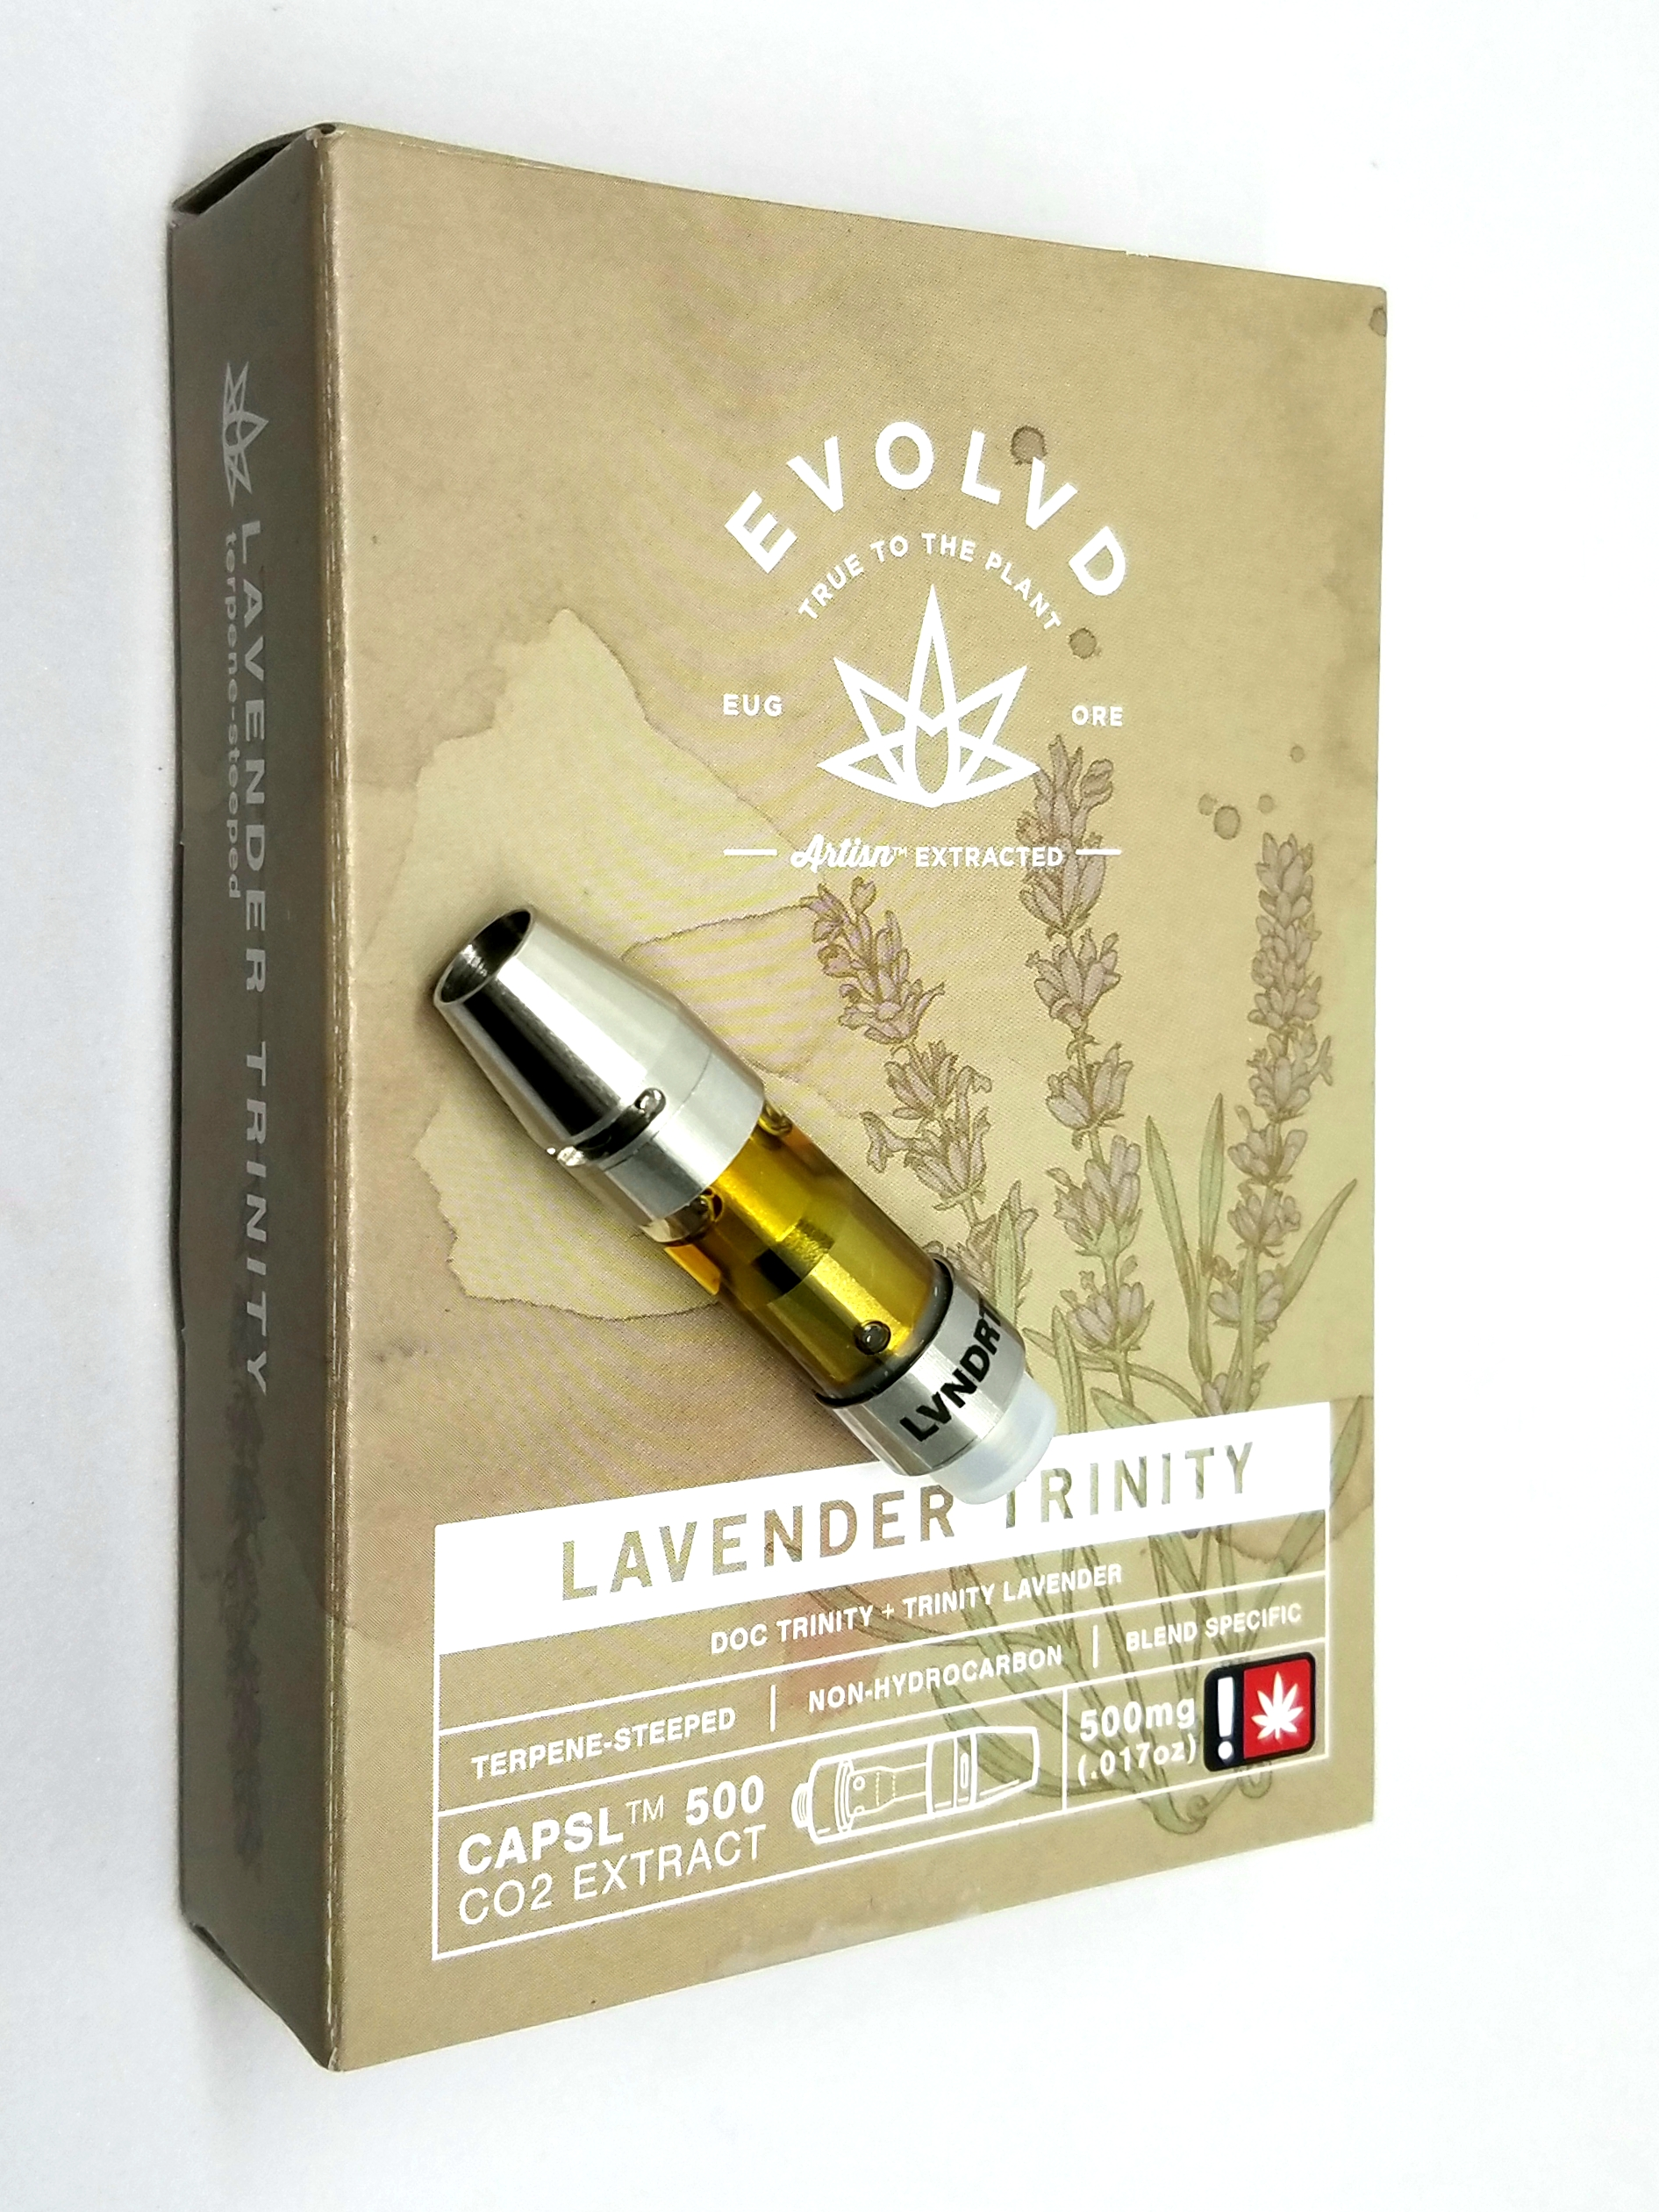 Lavender Trinity 1/2g cartridge from EVO